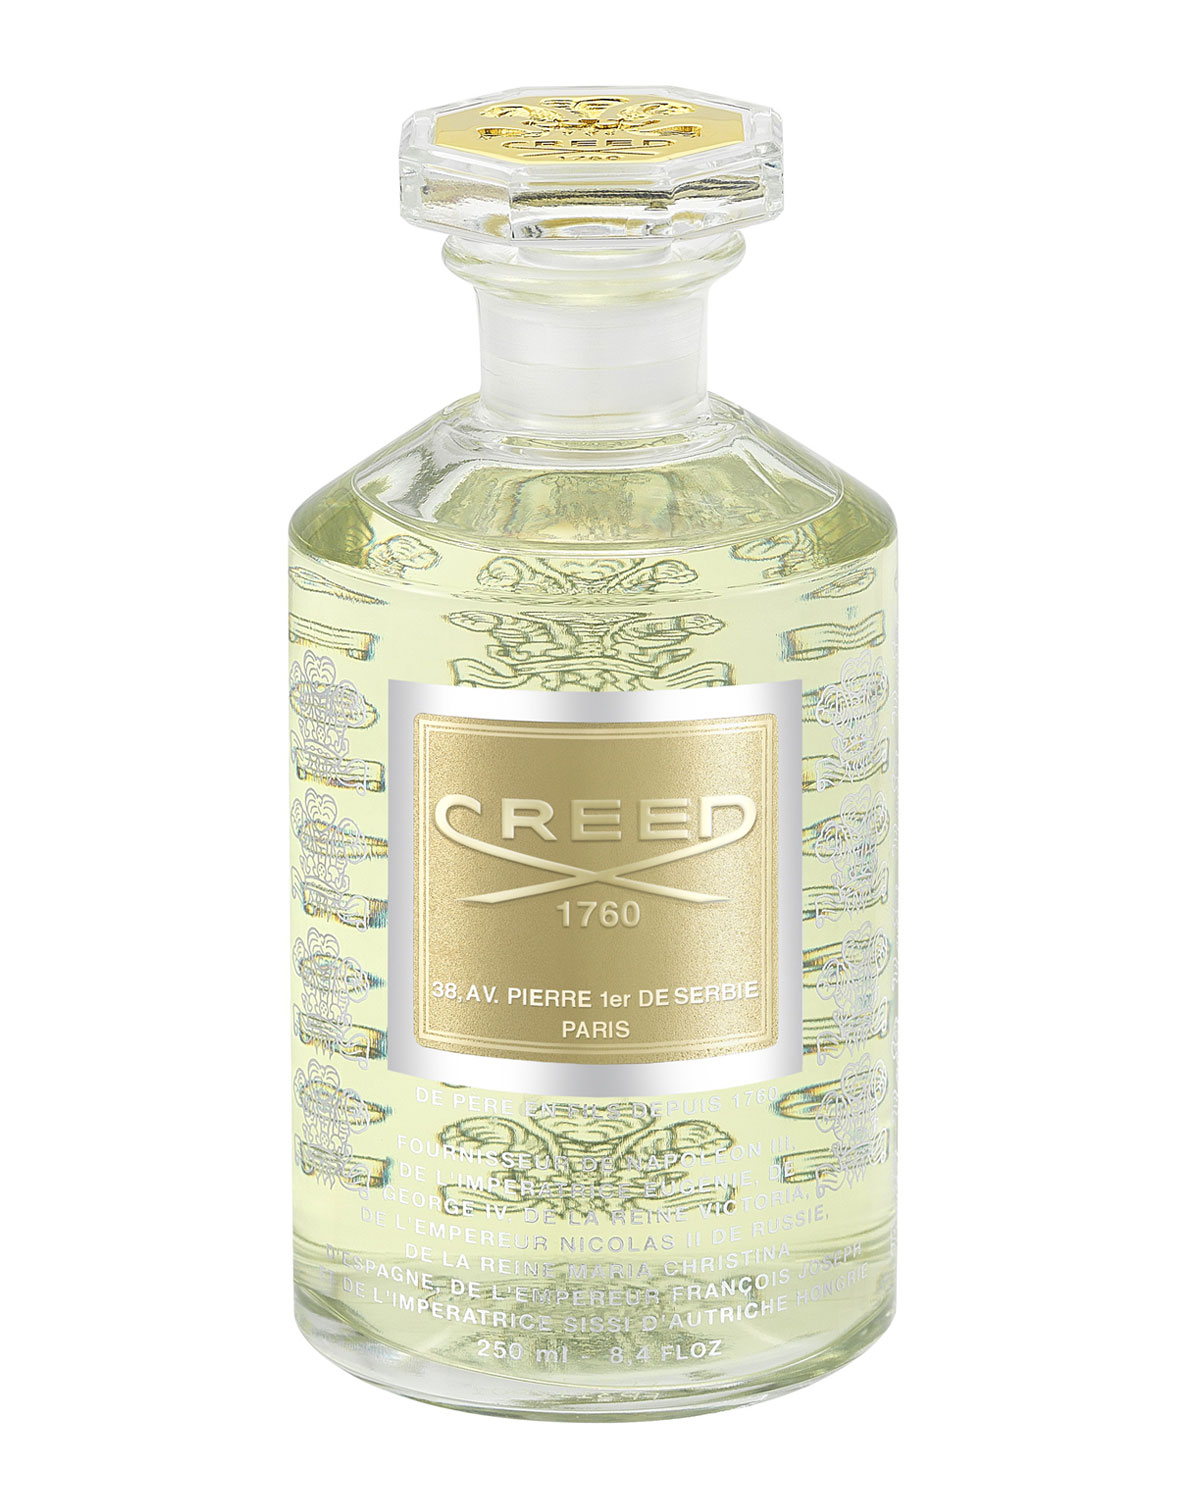 CREED 8.4 oz. Erolfa